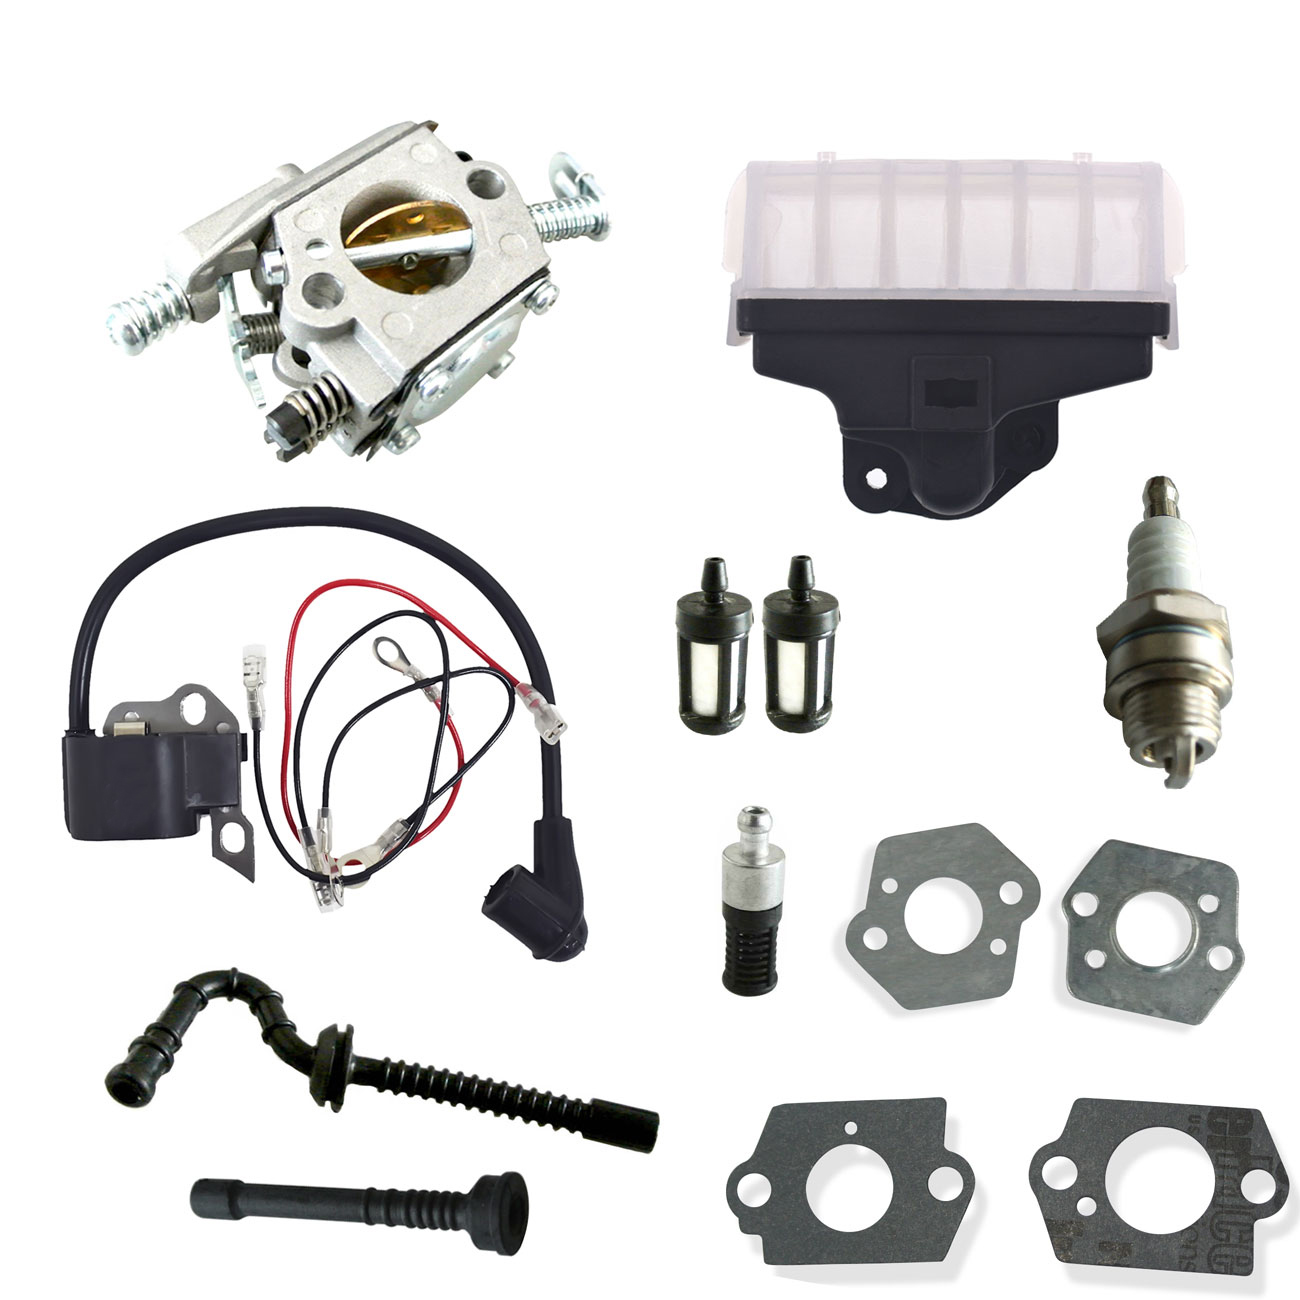 Carburetor Ignition Coil Air Filter For STIHL 021 023 025 MS210 MS230 Chainsaw Engine цена 2017